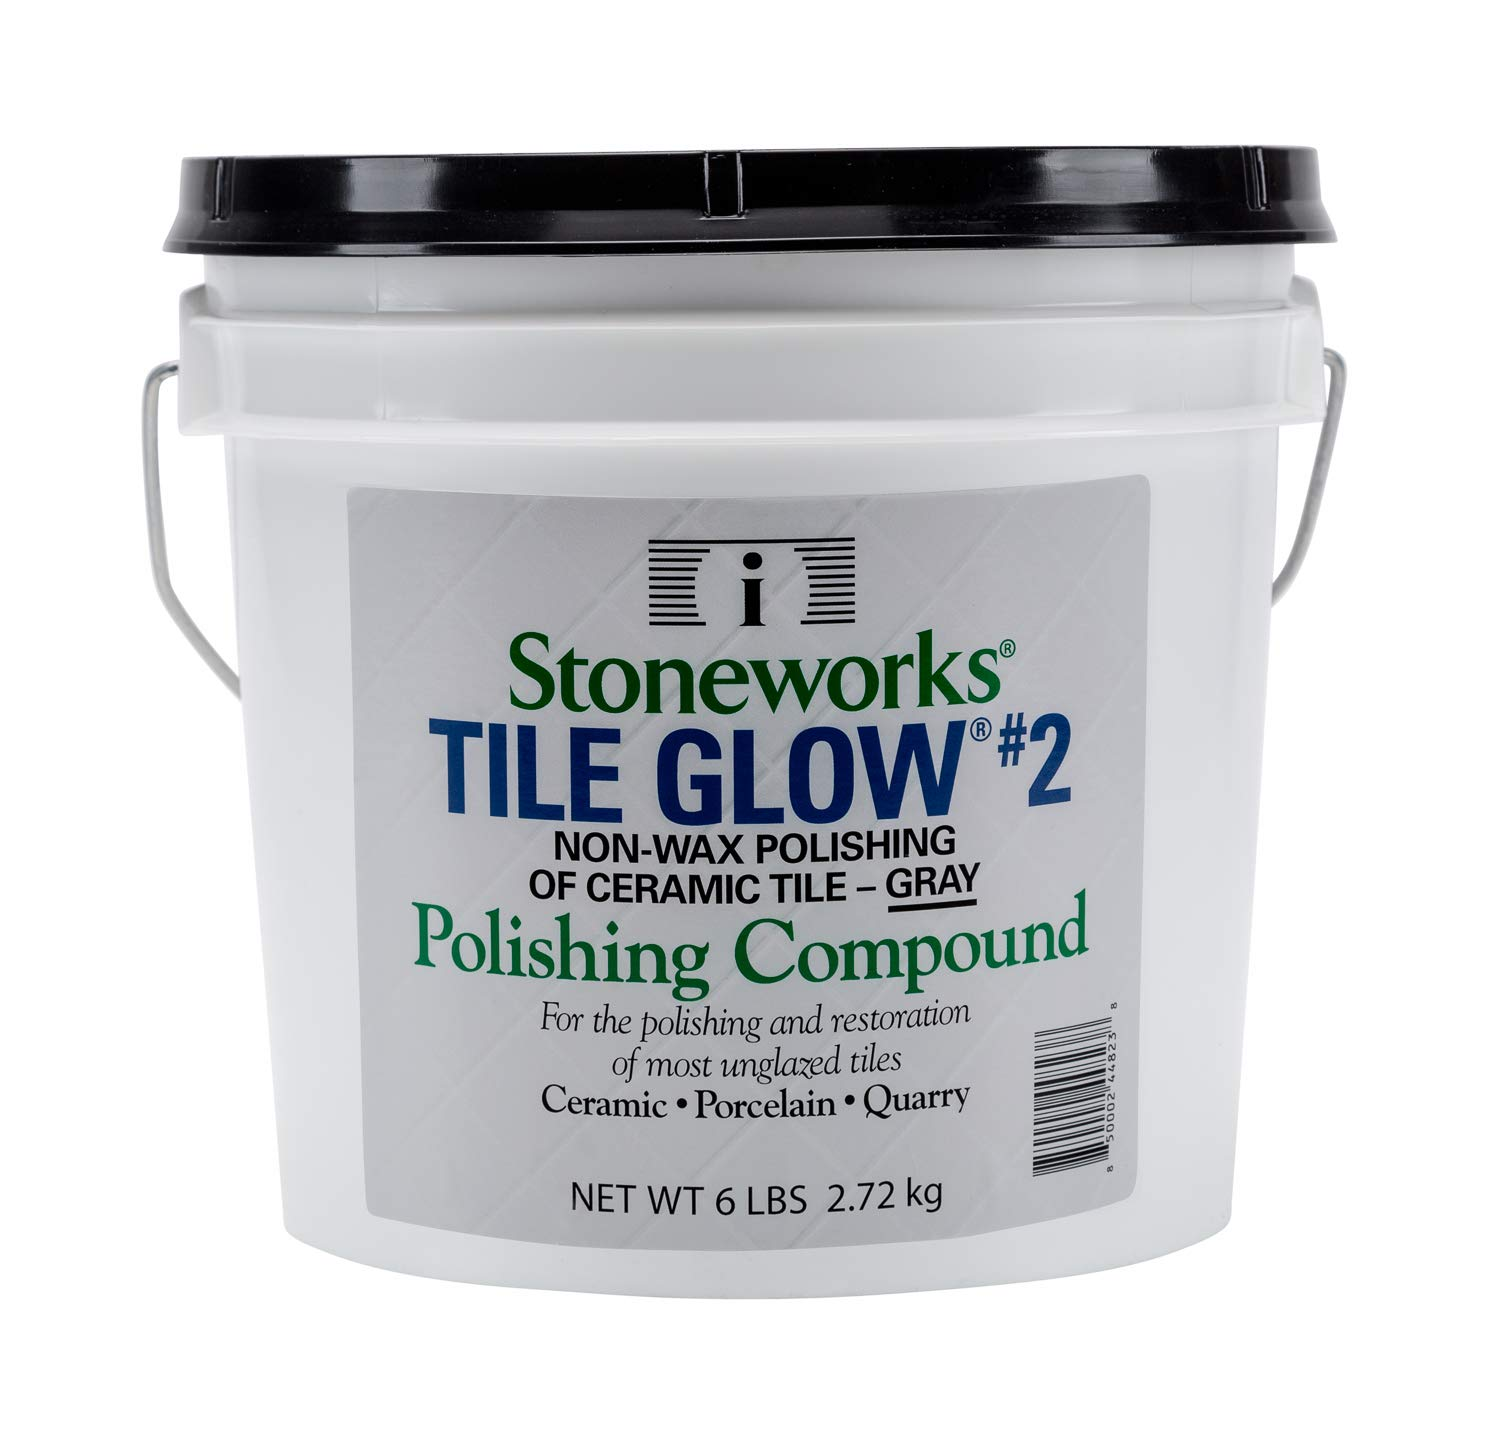 Tile Glow #2 Gray (6 Lb) Natural, Non-Wax Compound for The polishing of Most unglazed Ceramic, Porcelain and Quarry Tiles, which Gives a Long Lasting Finish and Natural Shine to Tiles